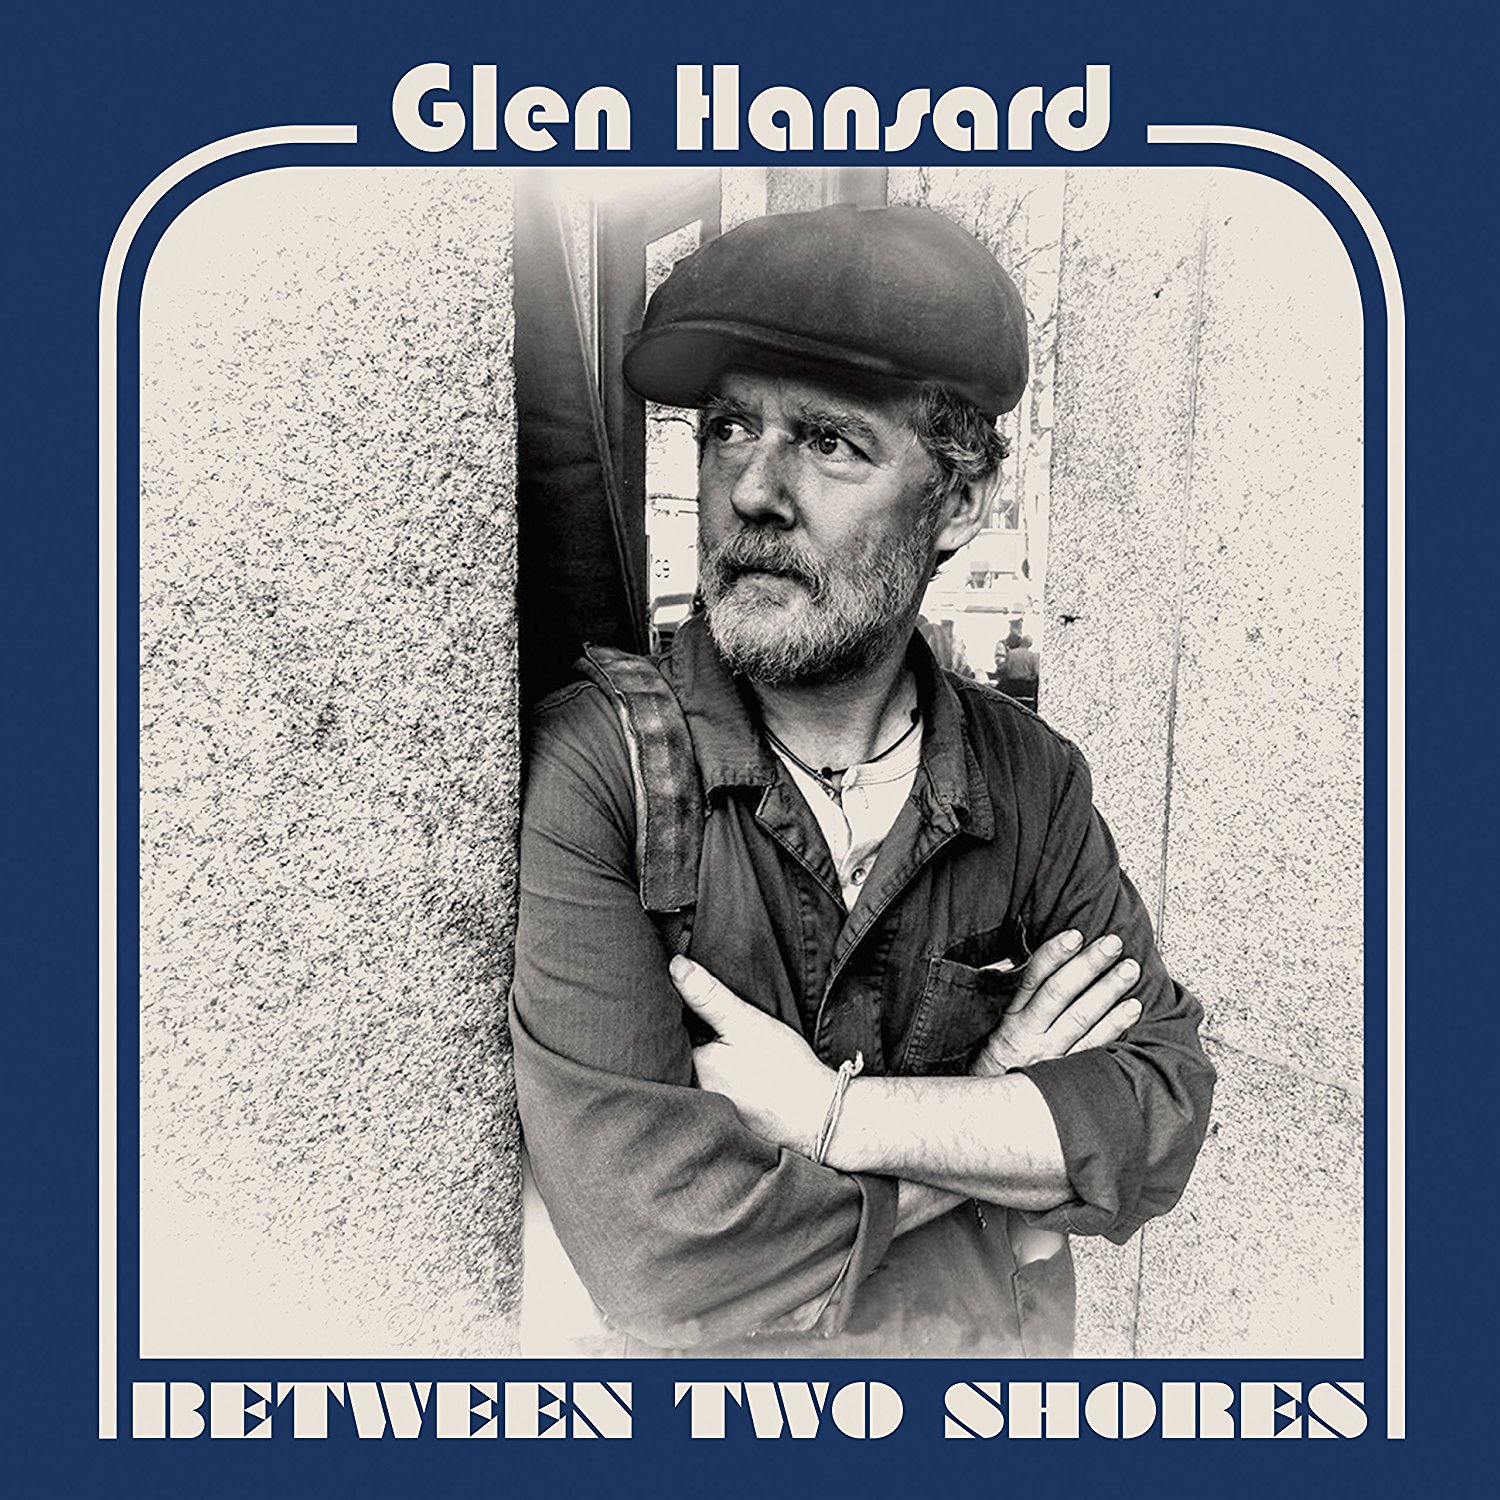 Glen Hansard - Between Two Shores [LP]